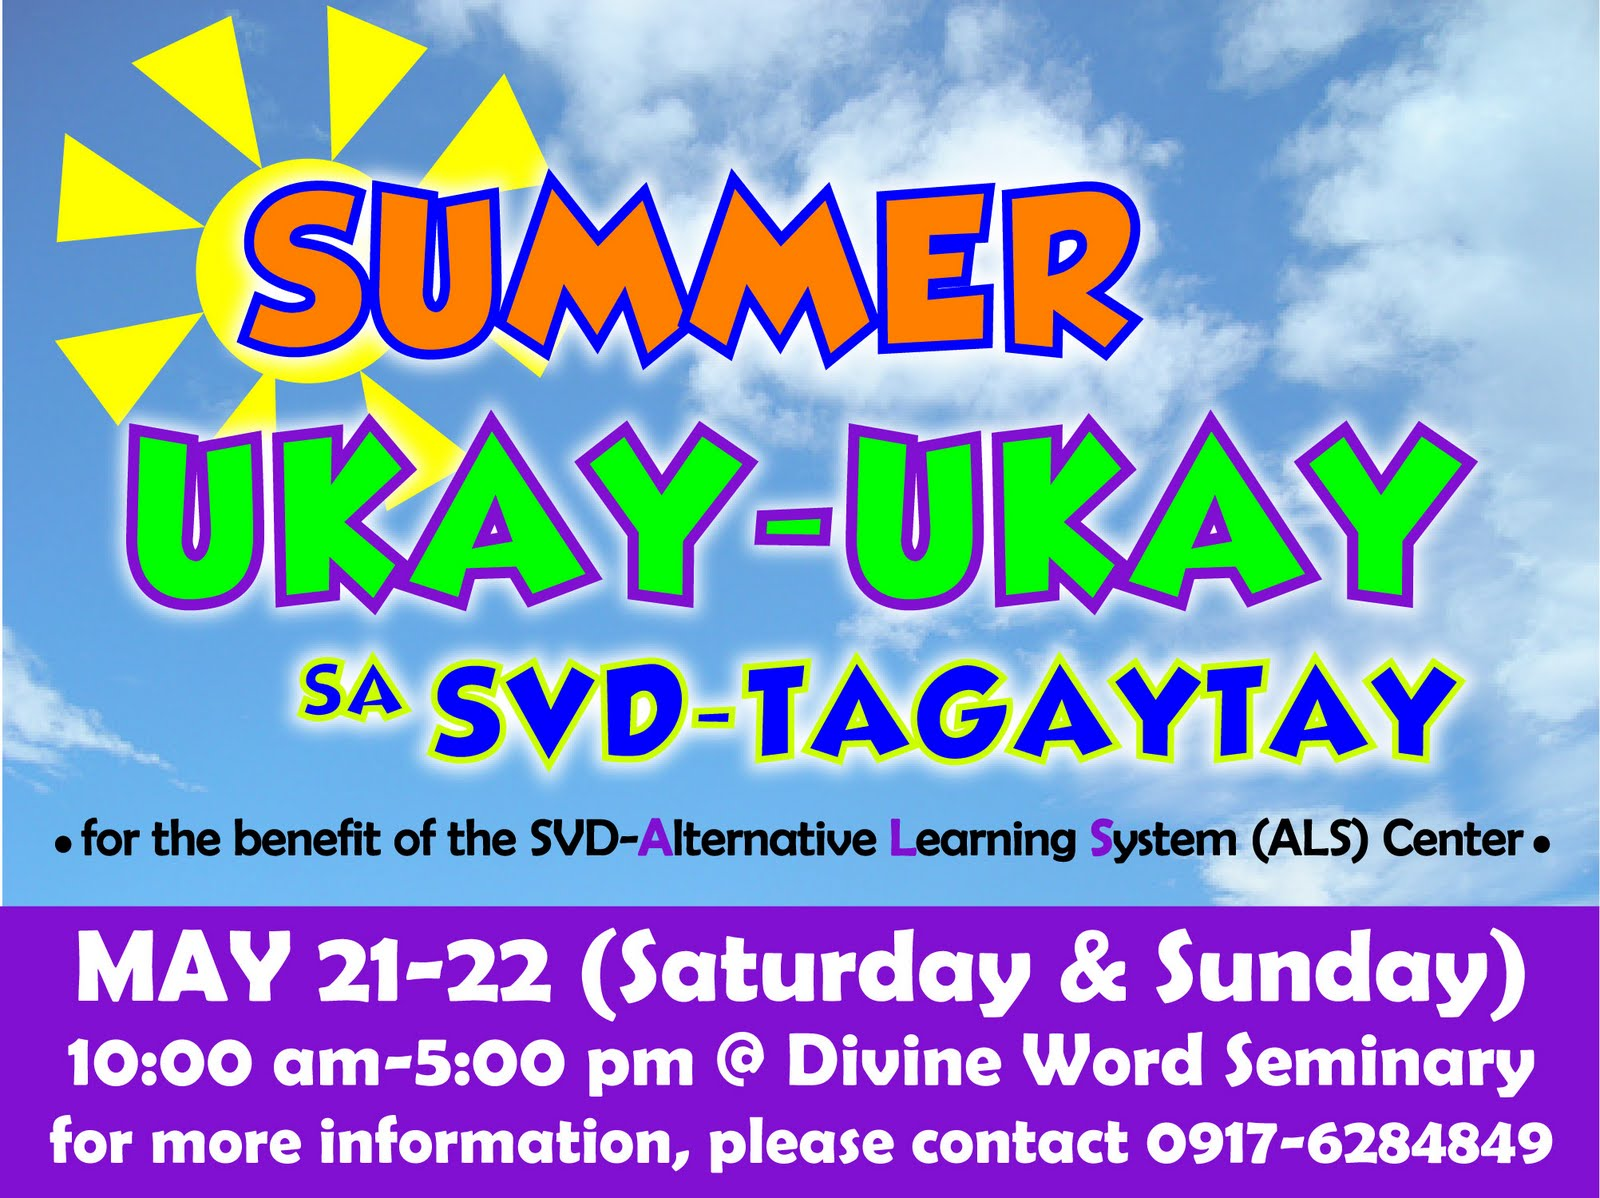 Divine word seminary 2011 a garage sale ukay ukay sa tagaytay will be held on may 21 22 2011 sat sun at the divine word seminary here in tagaytay city for the benefit of the malvernweather Image collections